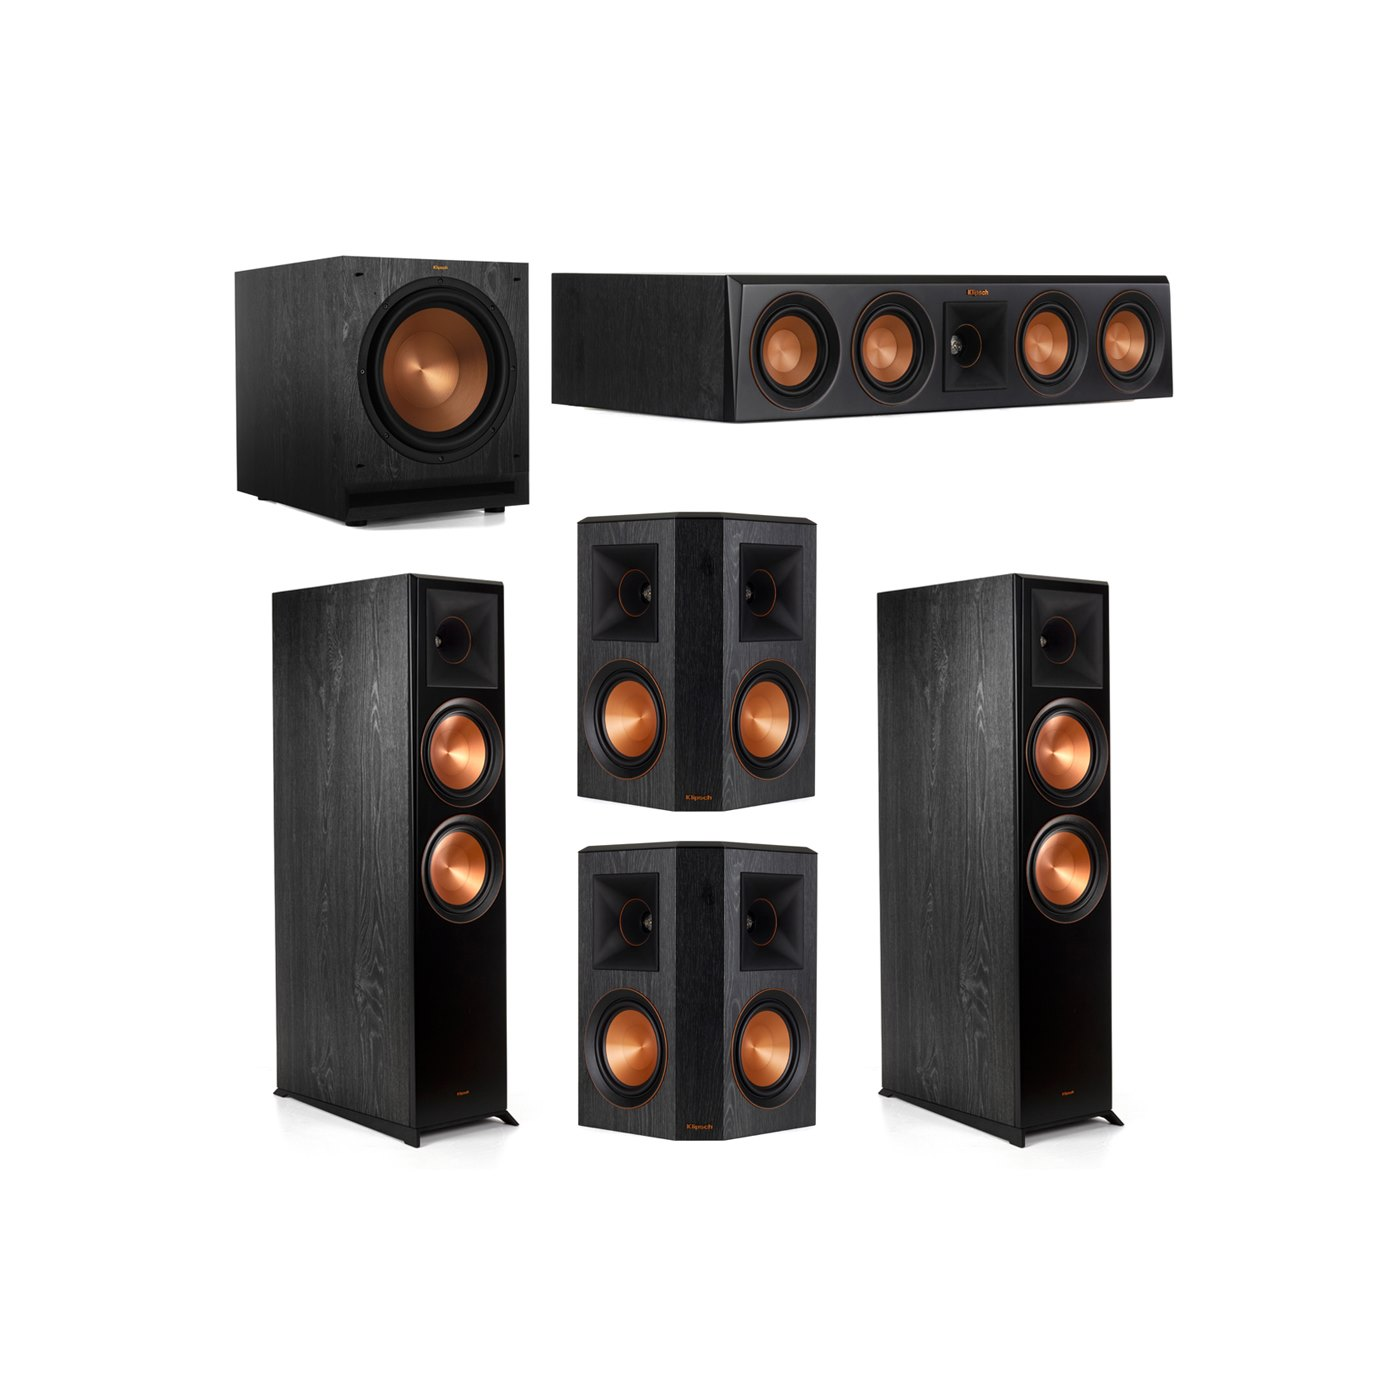 Klipsch 5.1.2 System - 2 RP-8060FA Dolby Atmos Speakers, 1 RP-404C, 2 RP-502S Speakers, 1 SPL-120